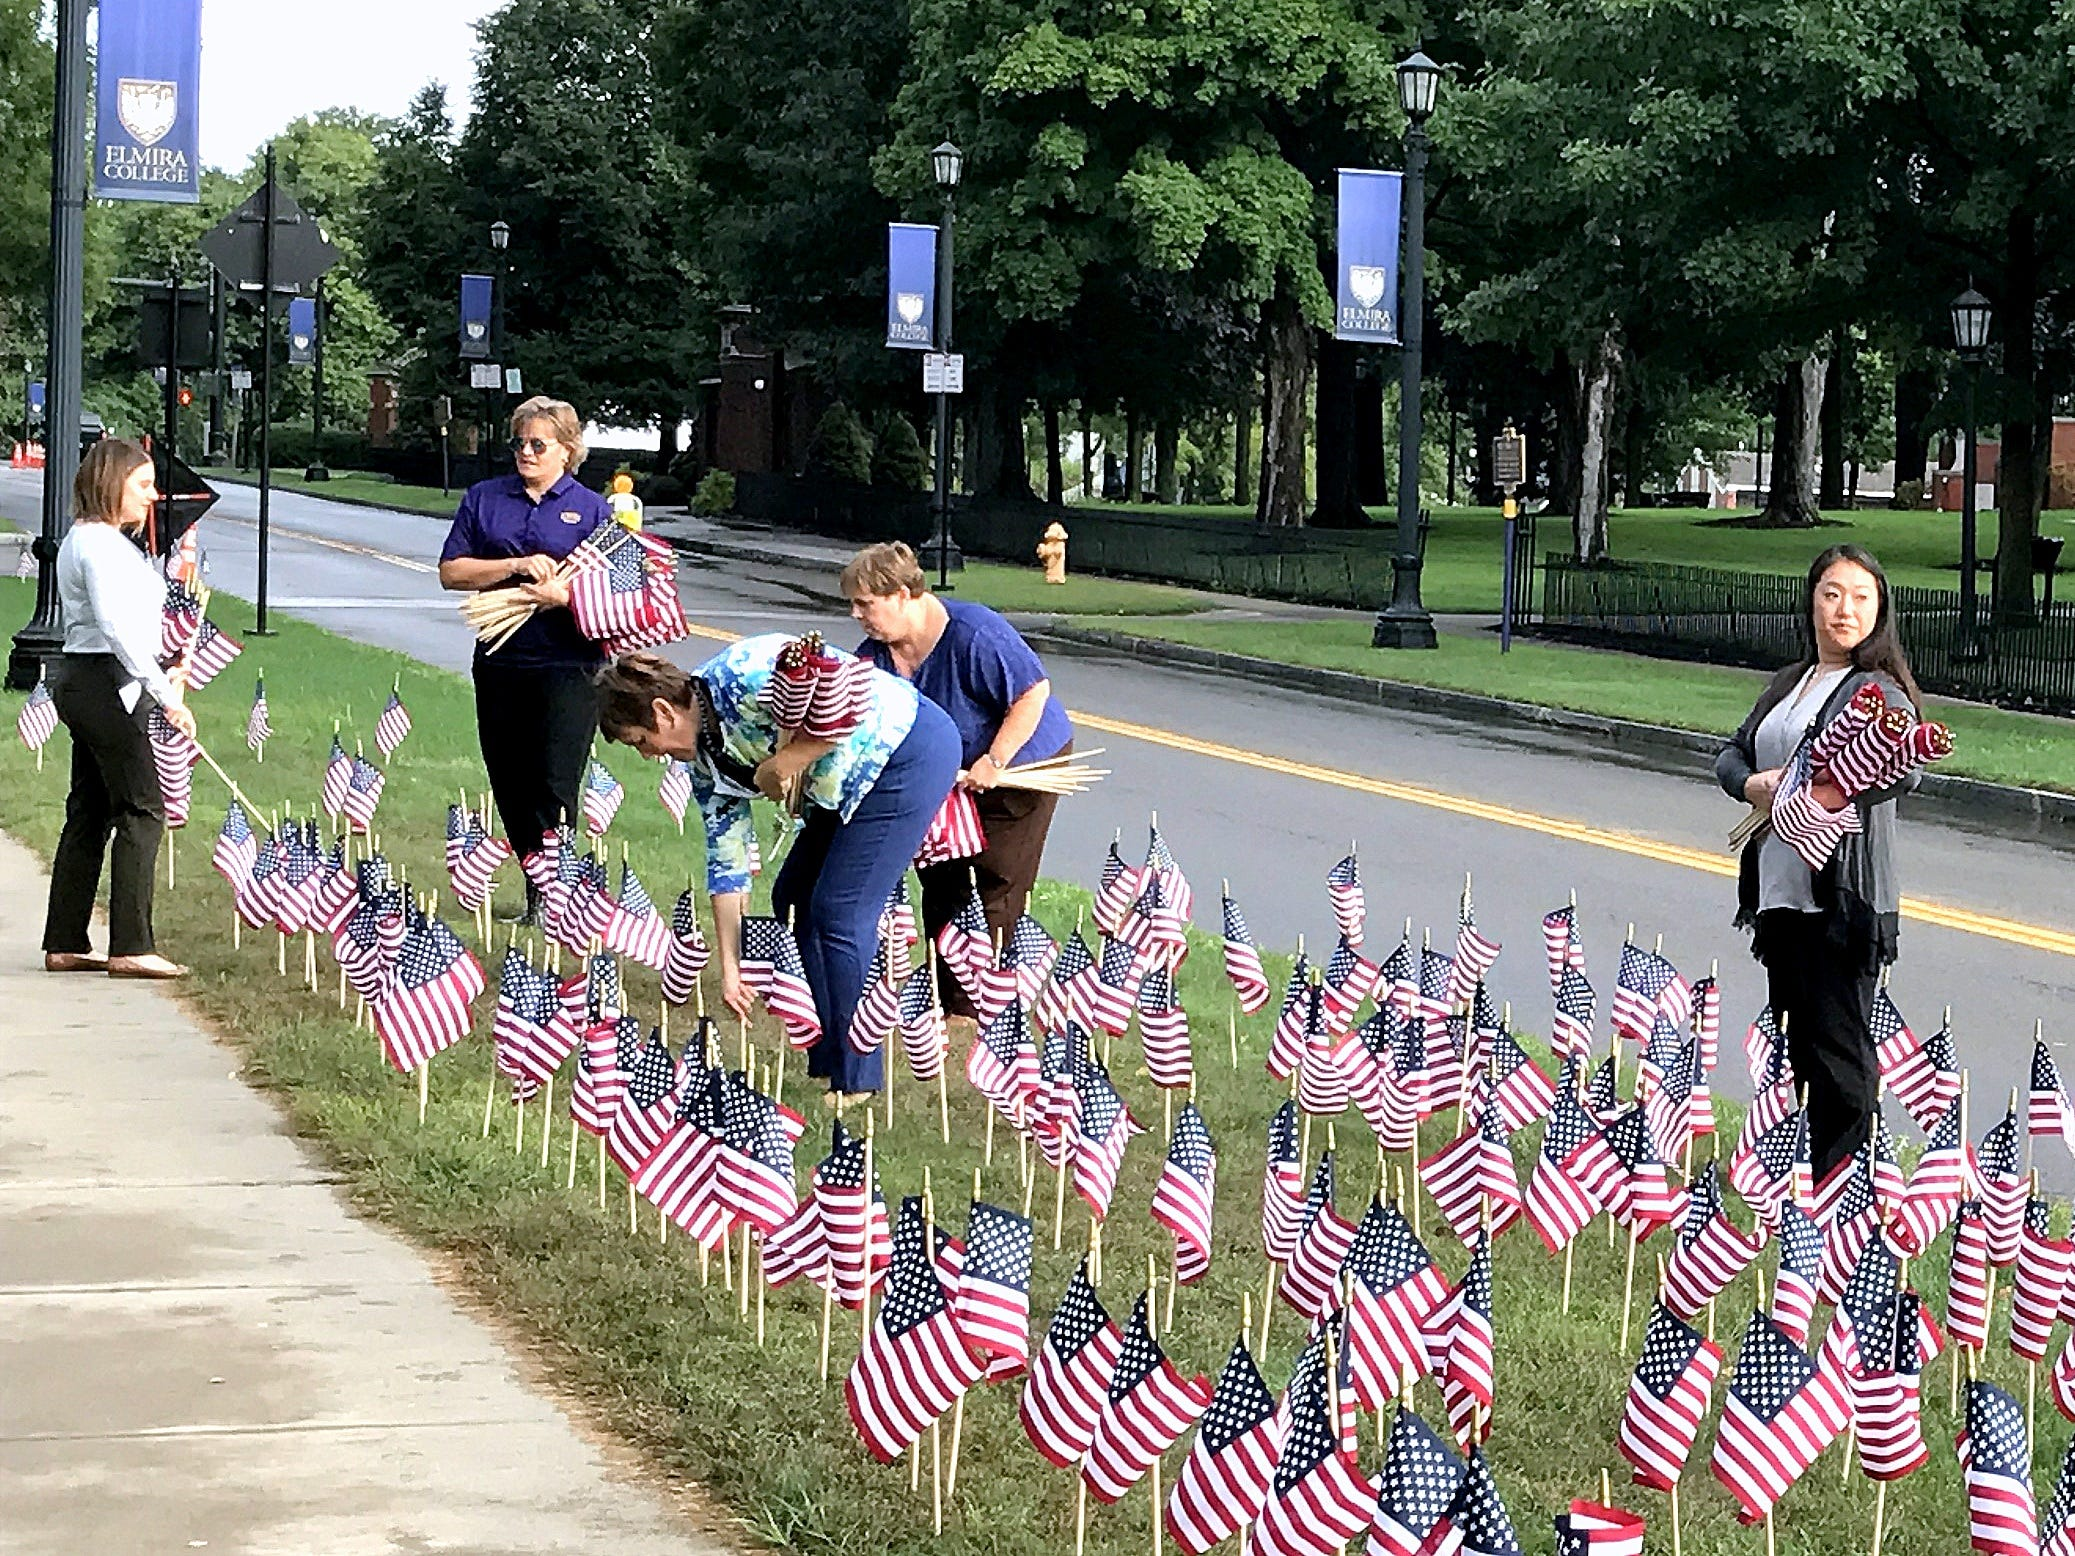 Students and faculty members of Elmira College plant nearly 3,000 American flags along Park Place in Elmira on Tuesday to honor the victims of the Sept. 11, 2001 terrorist attacks.